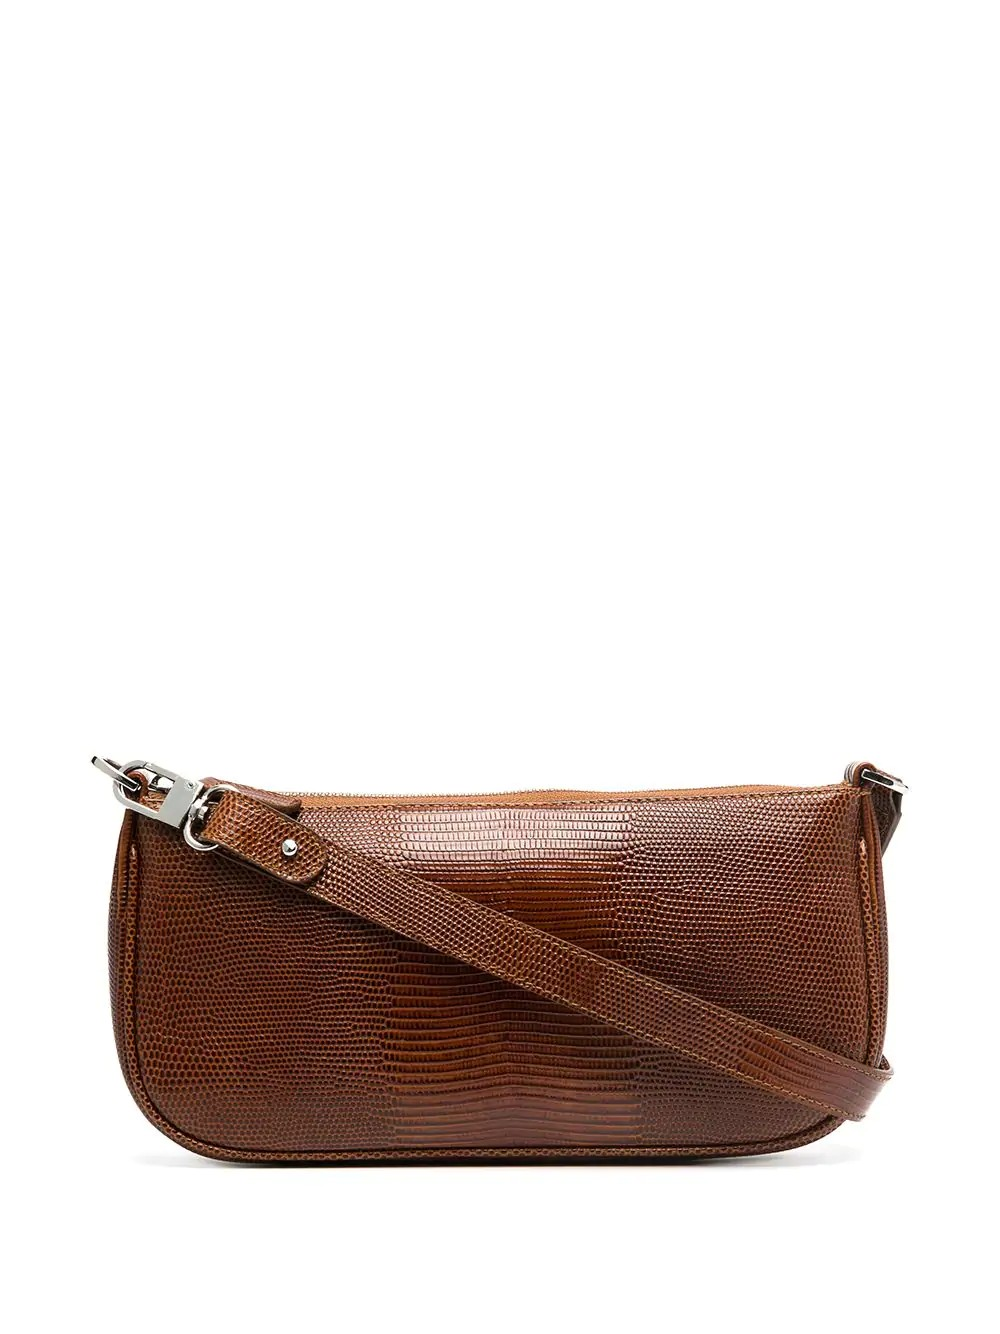 Rachel Tan Lizard Embossed Leather